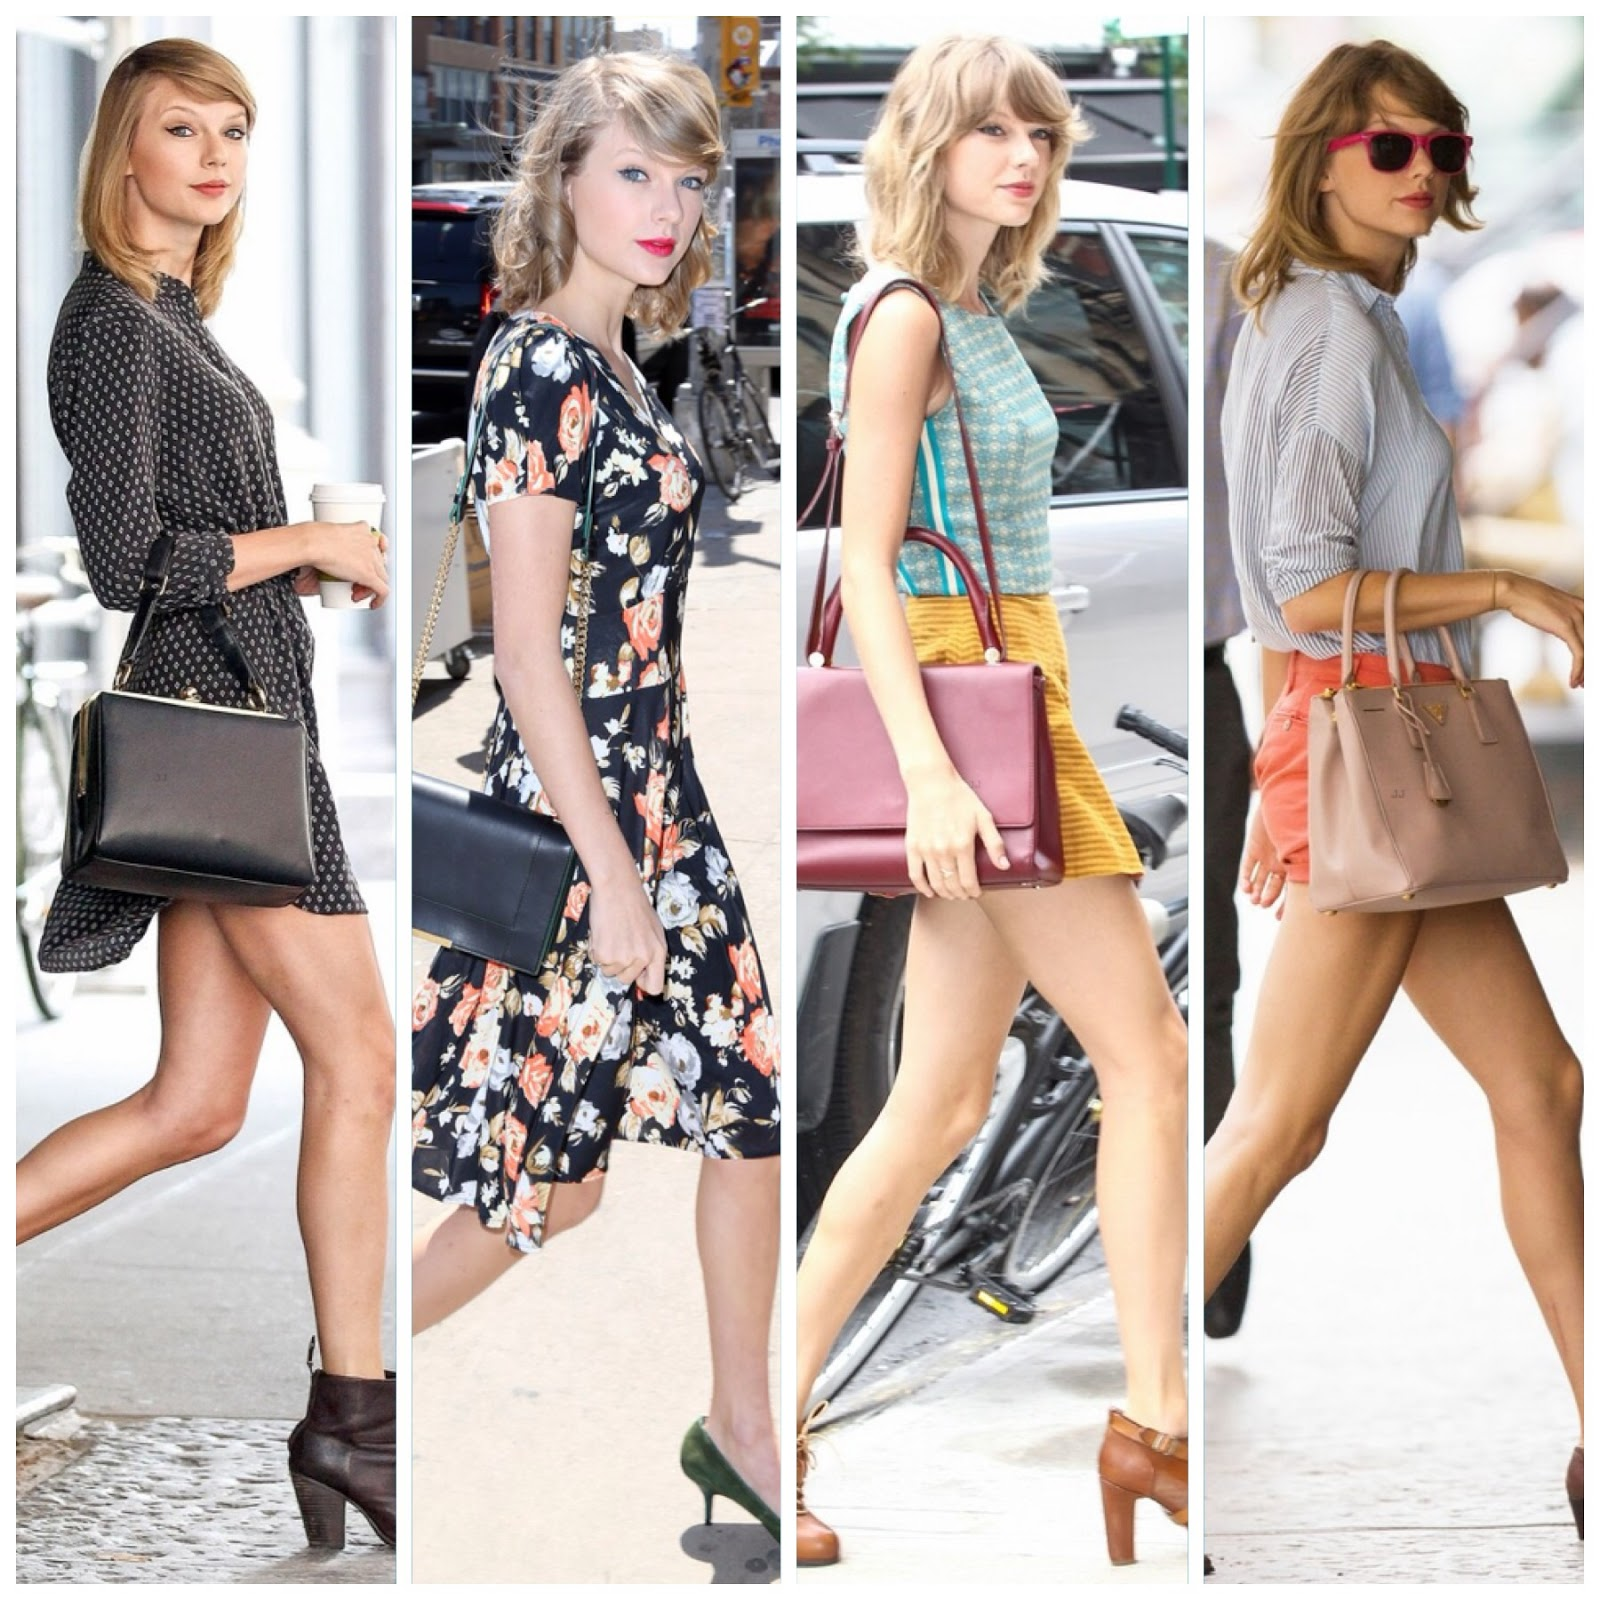 A fashionable life sean fox zastoupil taylor swift Fashion style of taylor swift